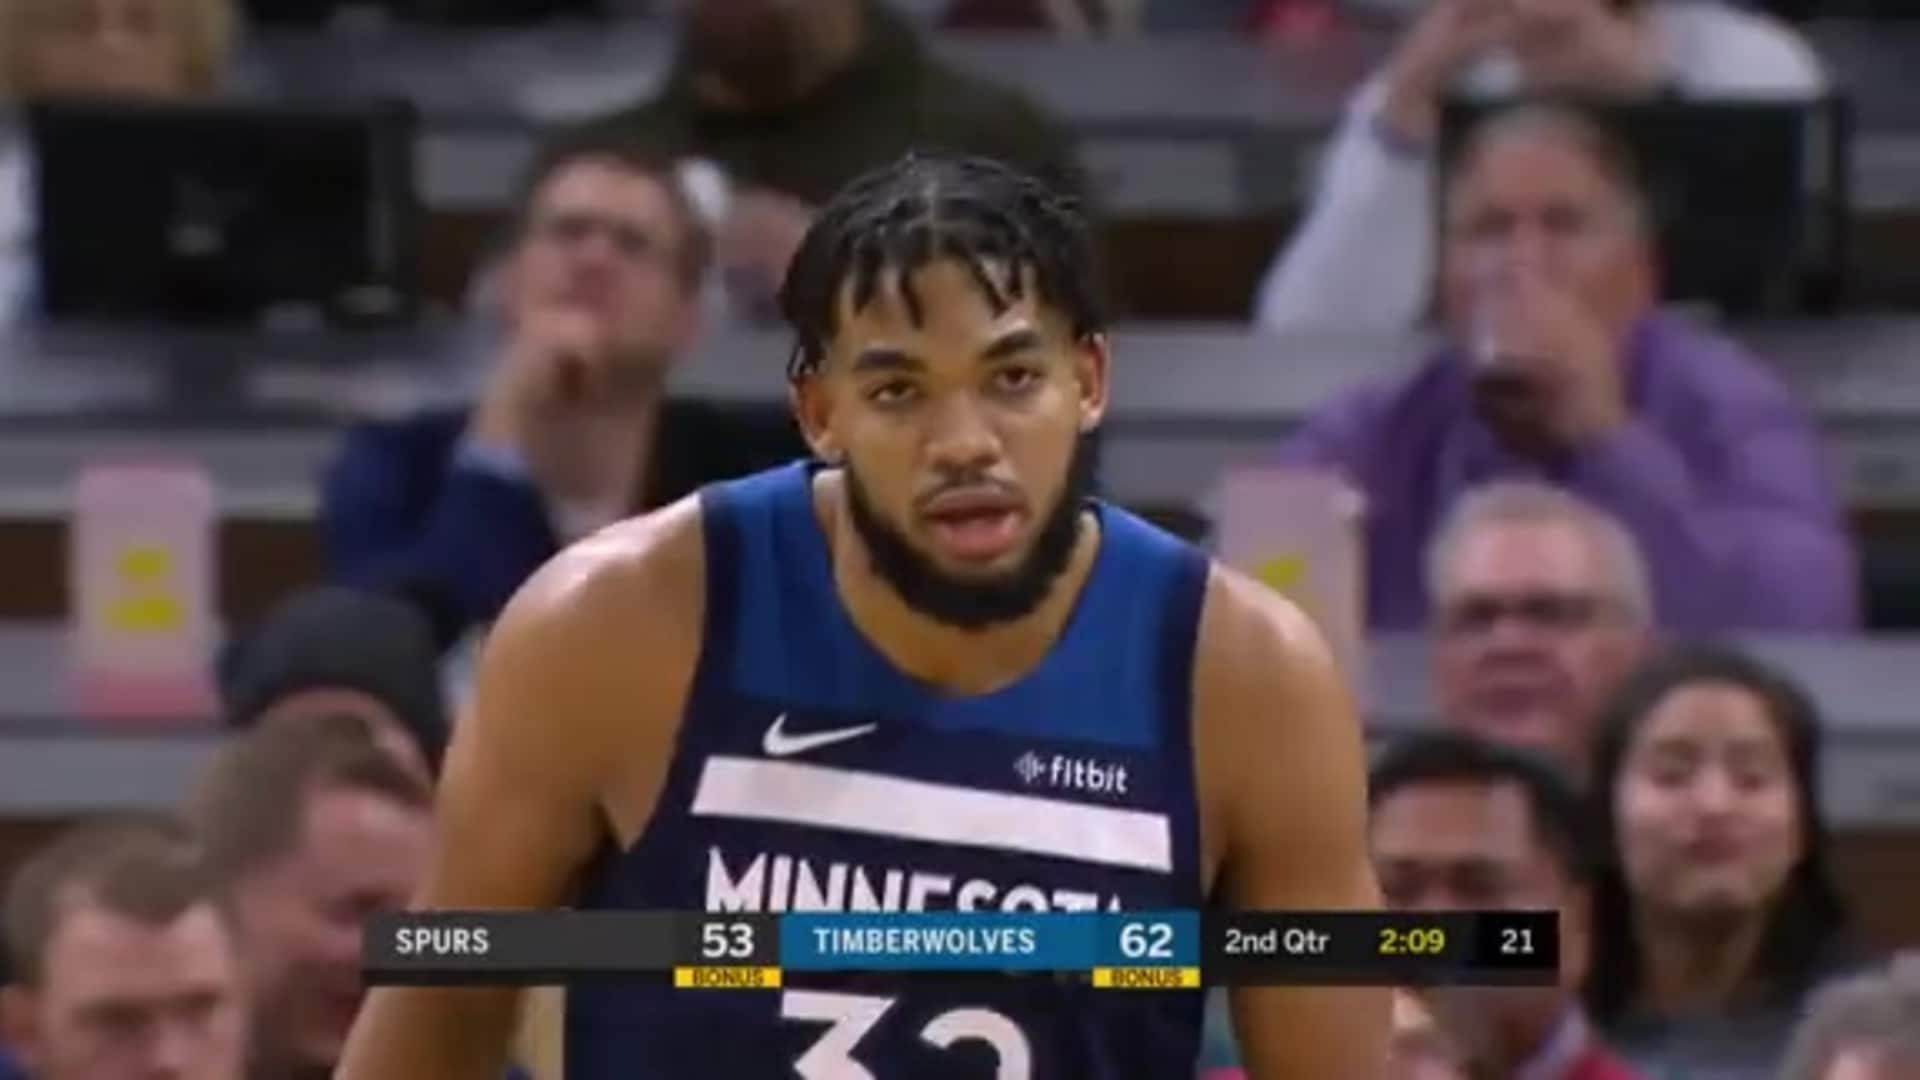 Highlights   Karl-Anthony Towns 28 Points, 11 Rebounds, 4 Assists vs. Spurs (11.13.19)